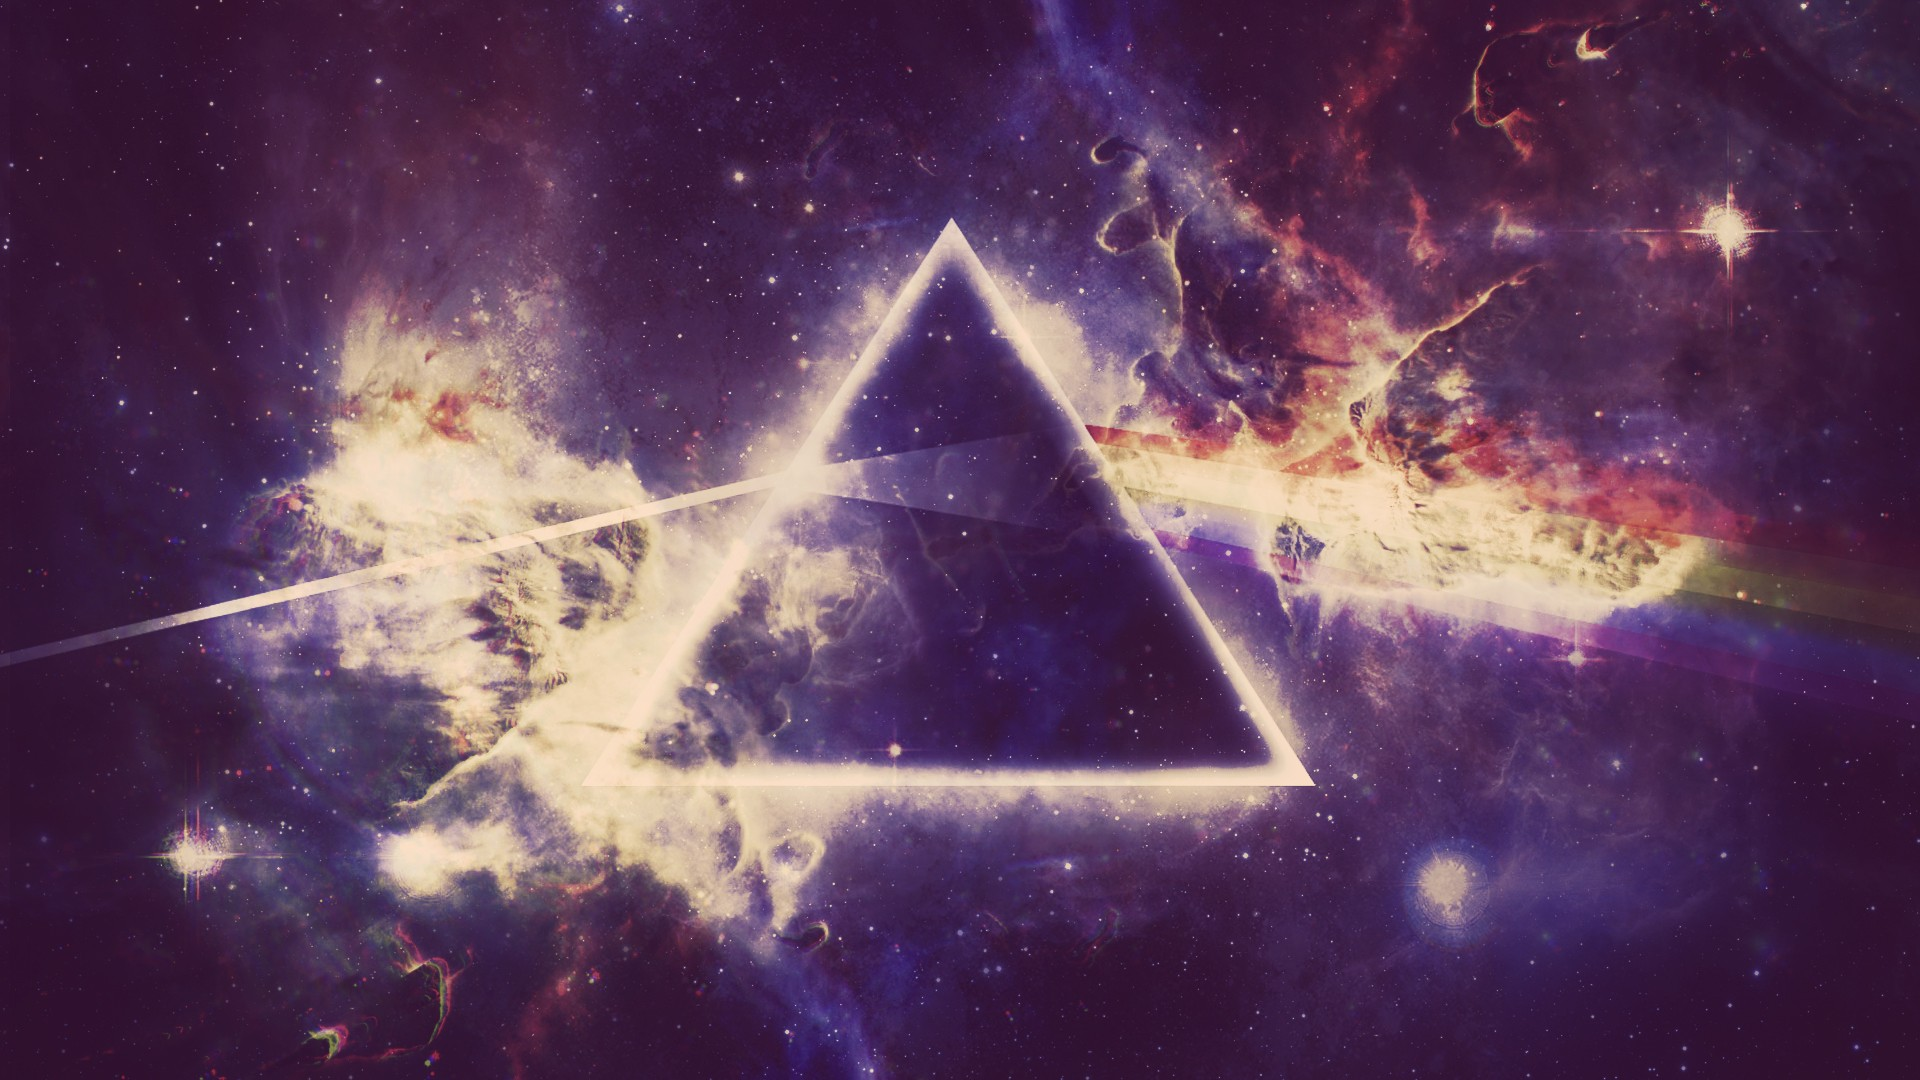 860701-dark-side-logos-music-pink-floyd-psychedelic-rock-band-rock-music-the-dark-side-of-the-moon-triangle.jpg